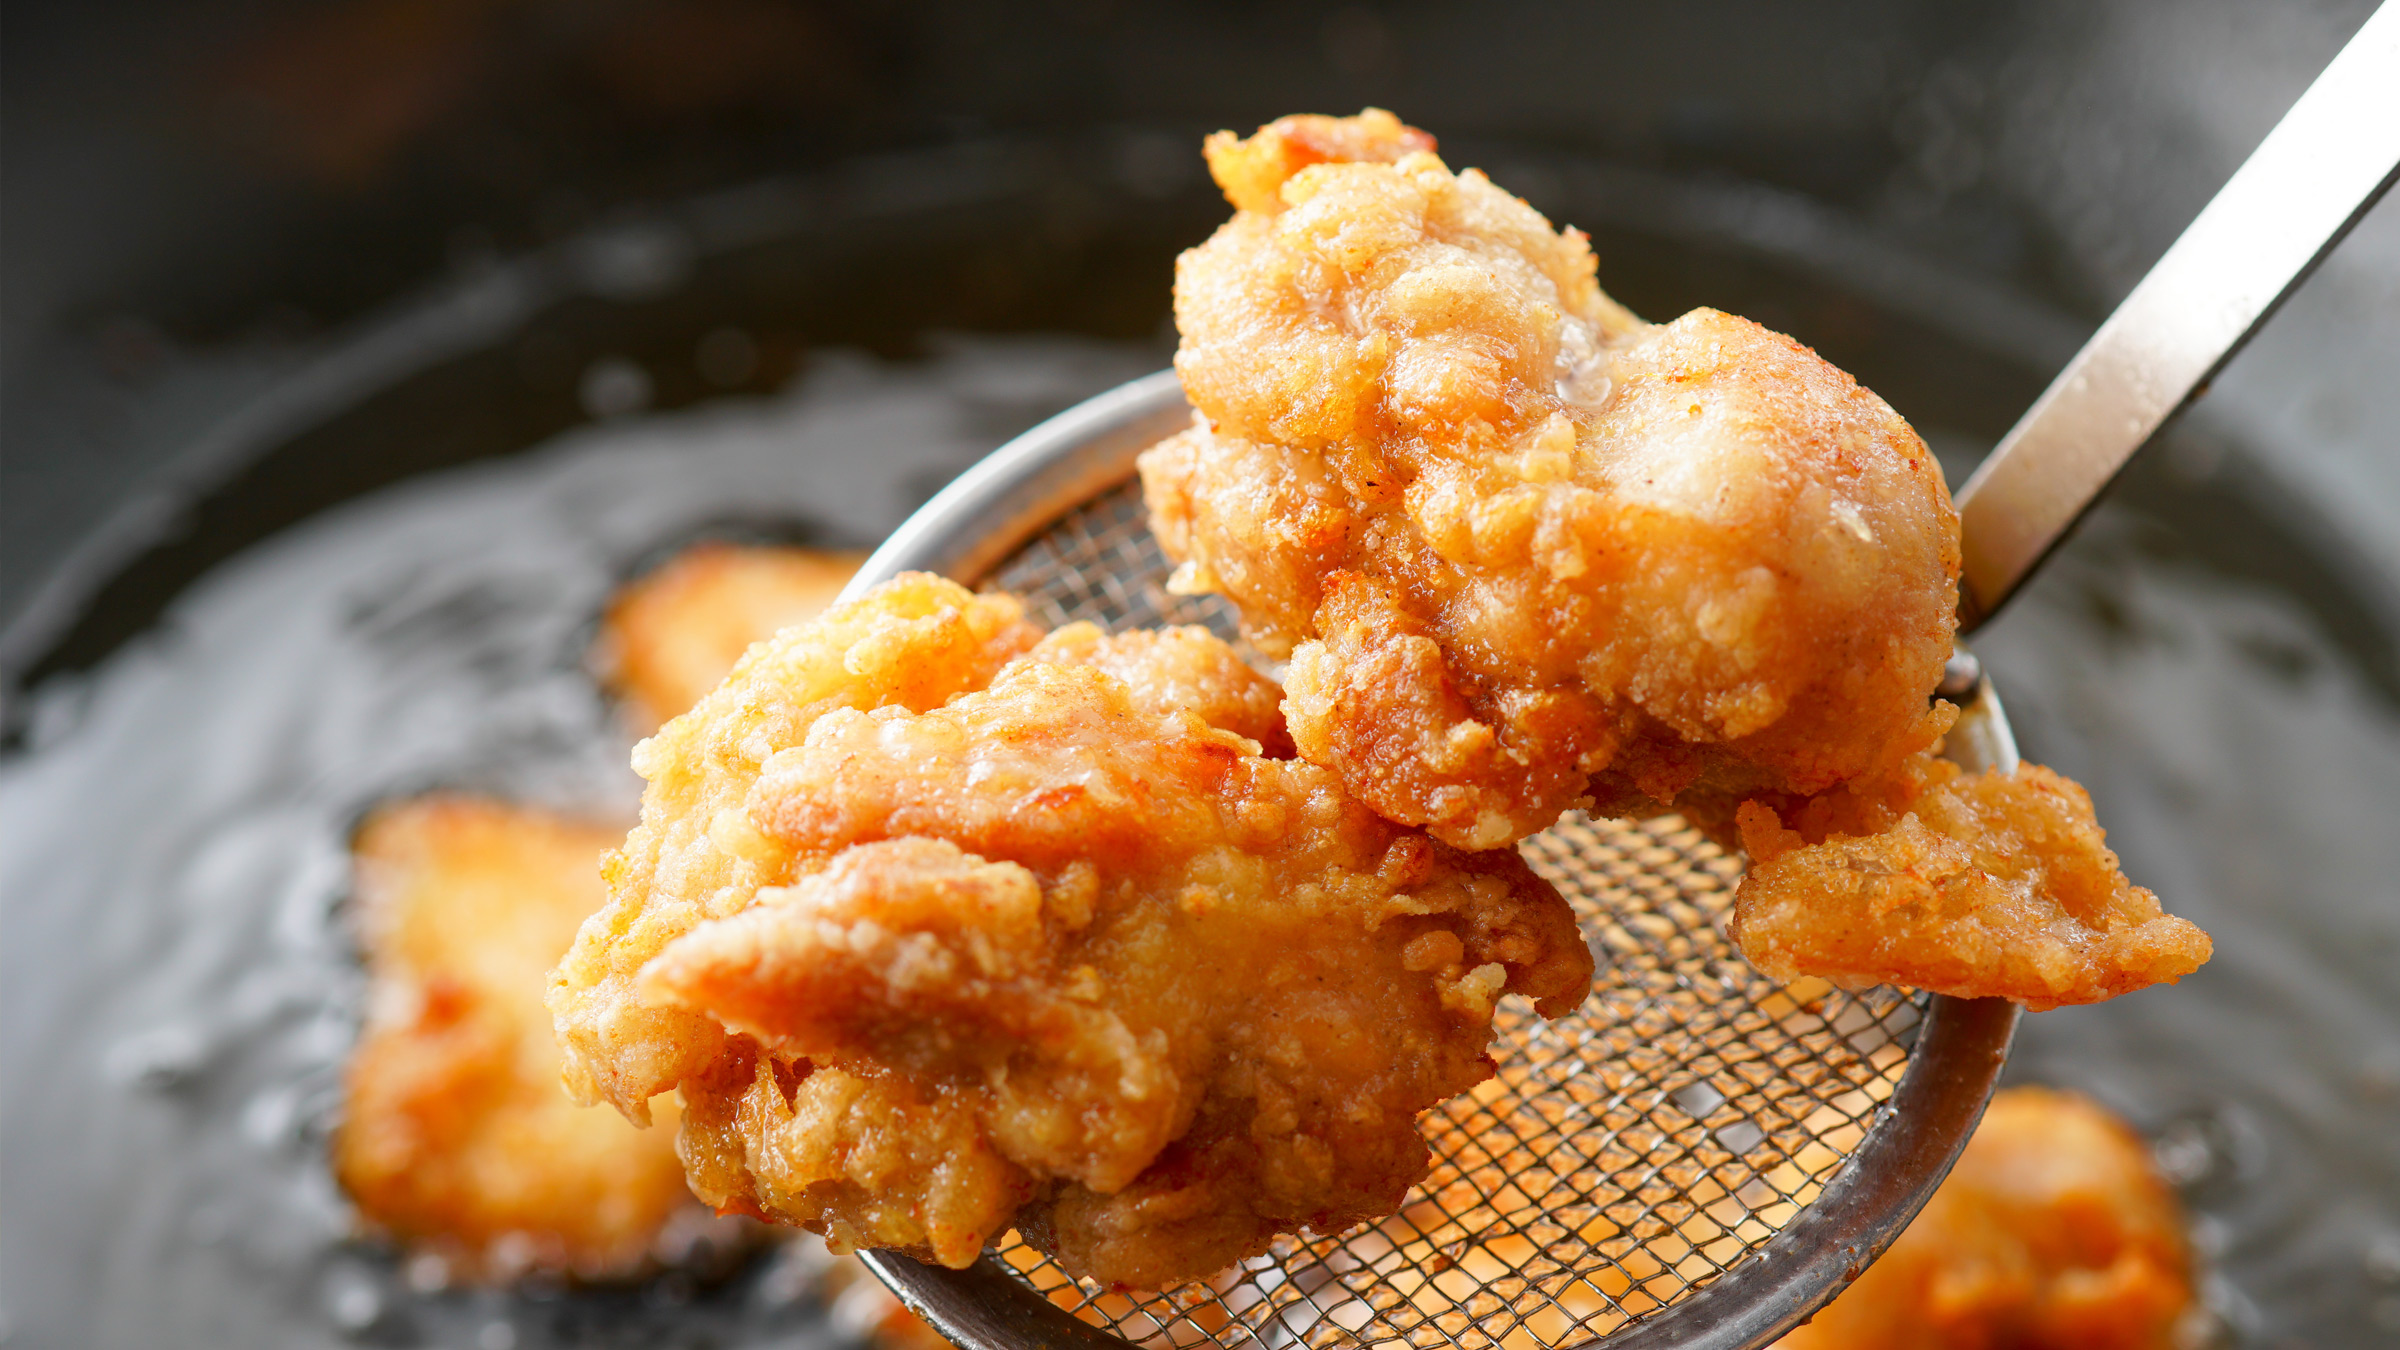 Karaage frying traditional way